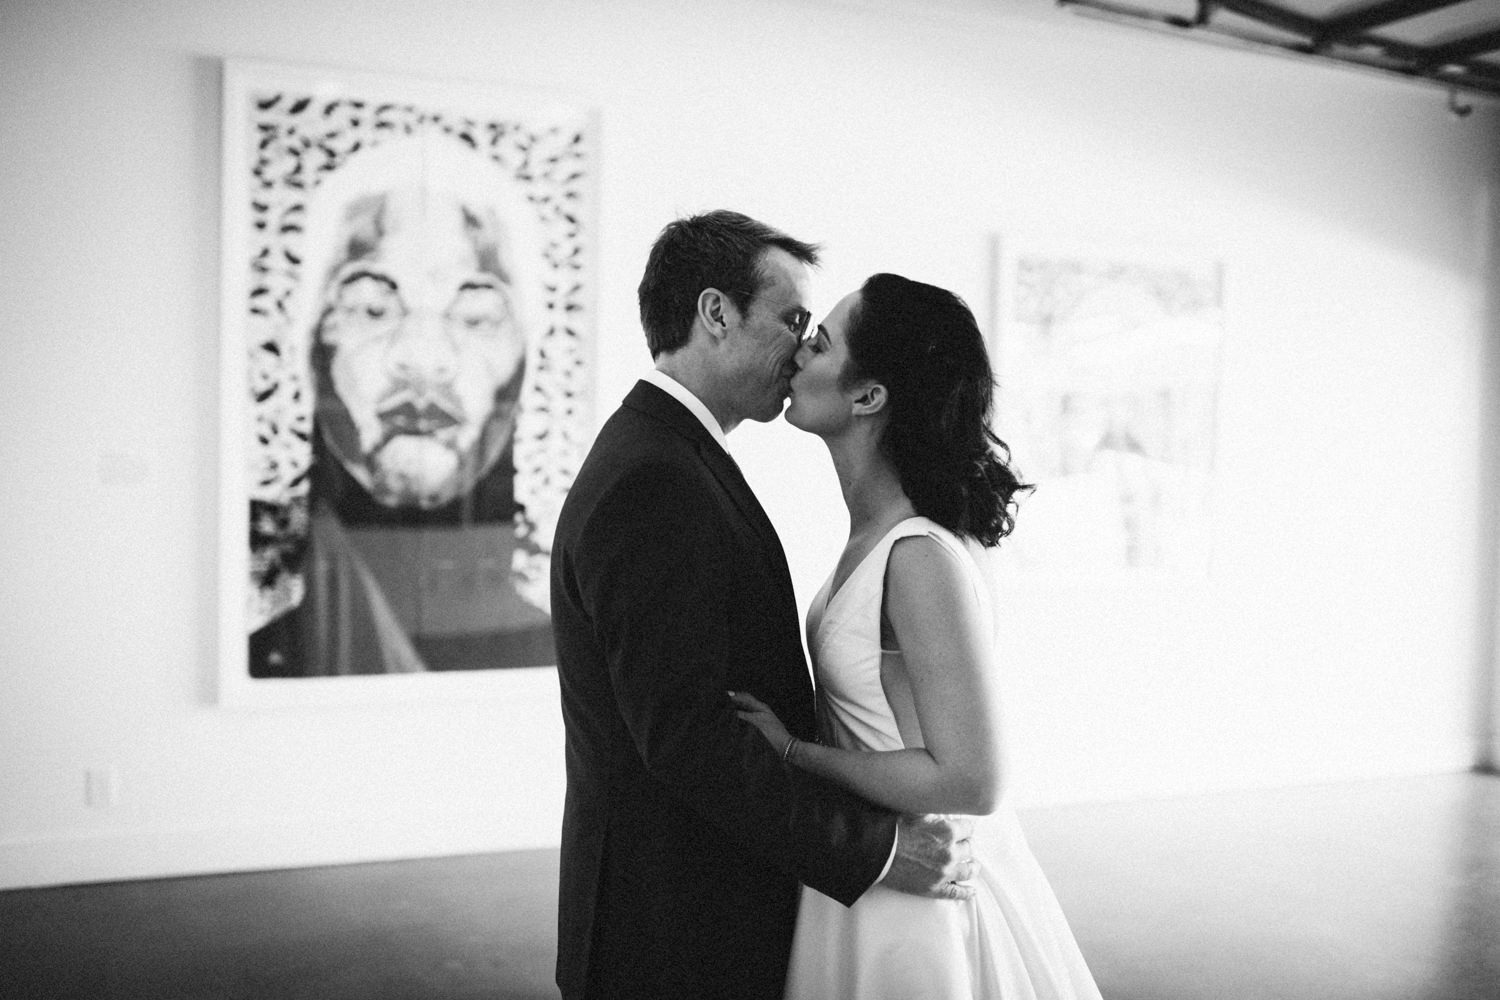 Jessica-Arno-Intimate-21c-Museum-Louisville-Kentucky-Wedding-By-Sarah-Katherine-Davis-Photography-148bw.jpg